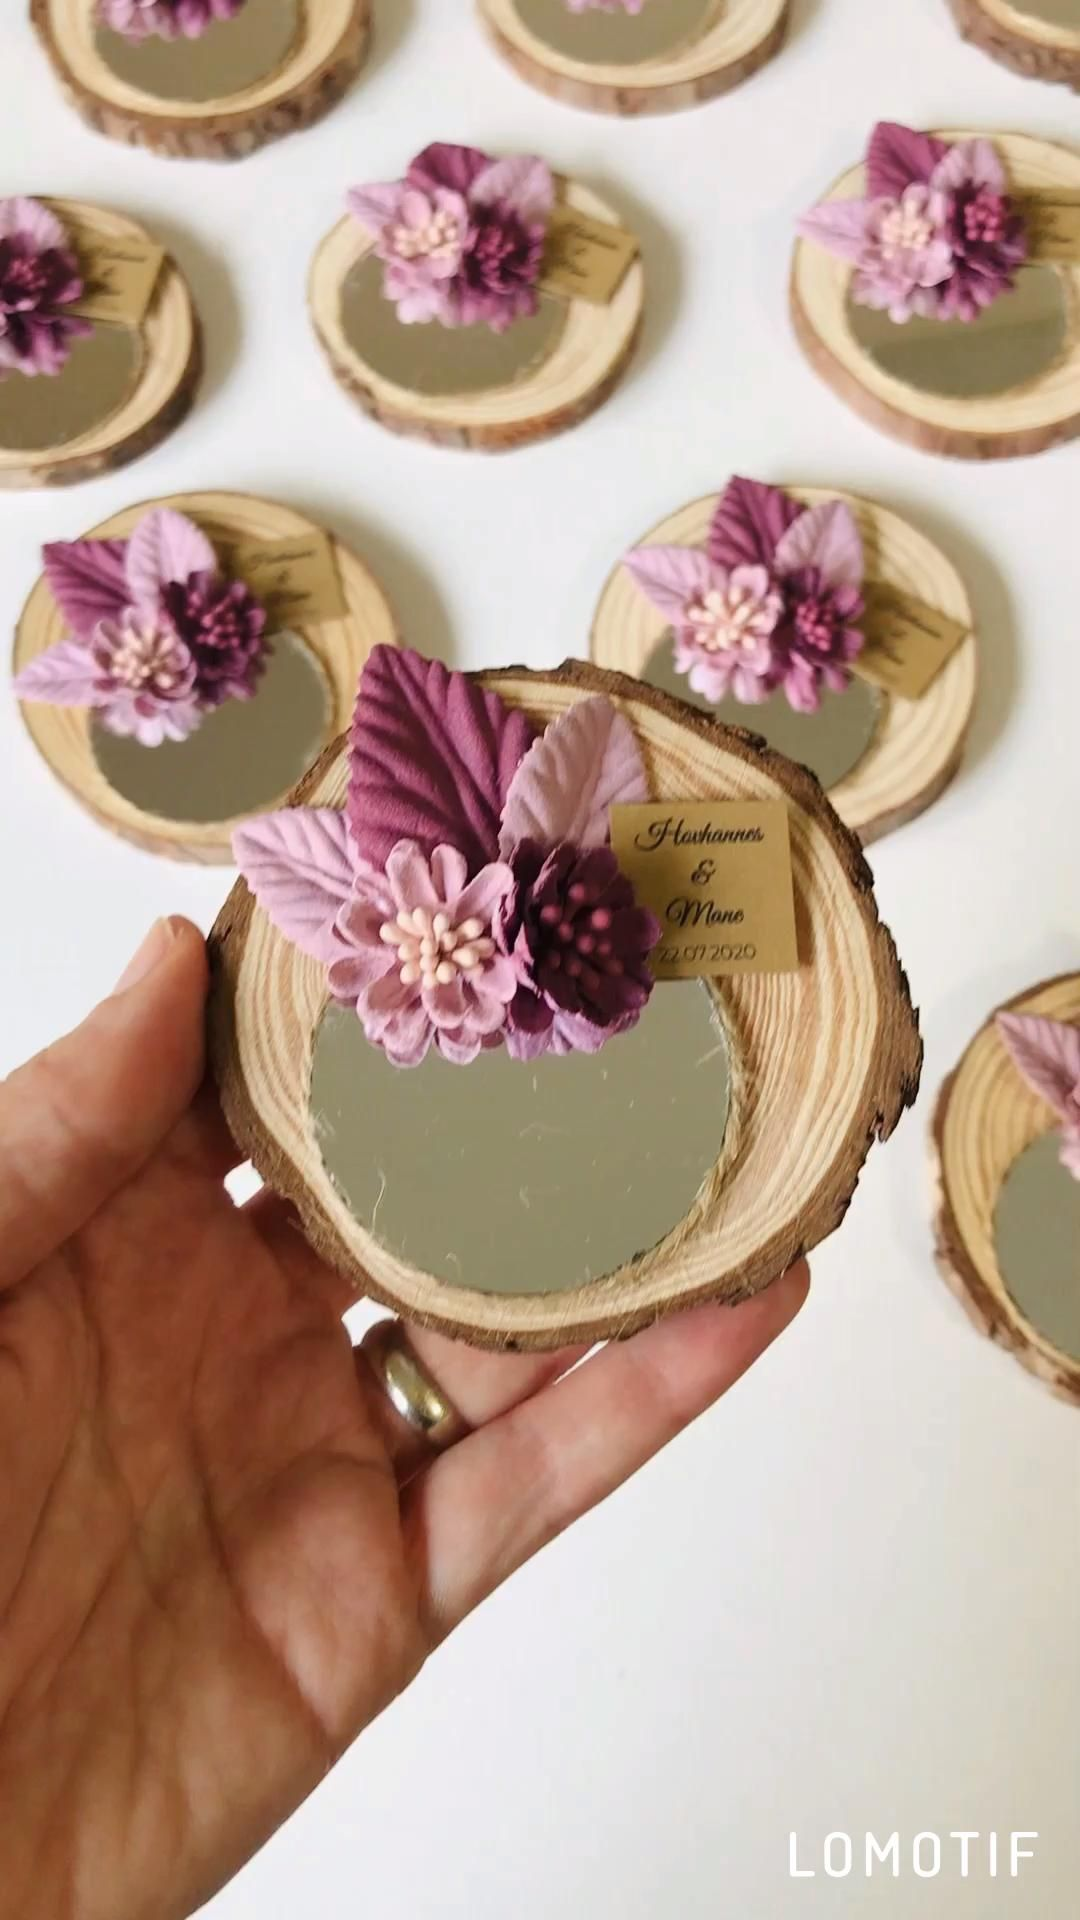 10pcs Wooden Mirror Favors Wedding Favors for Gues